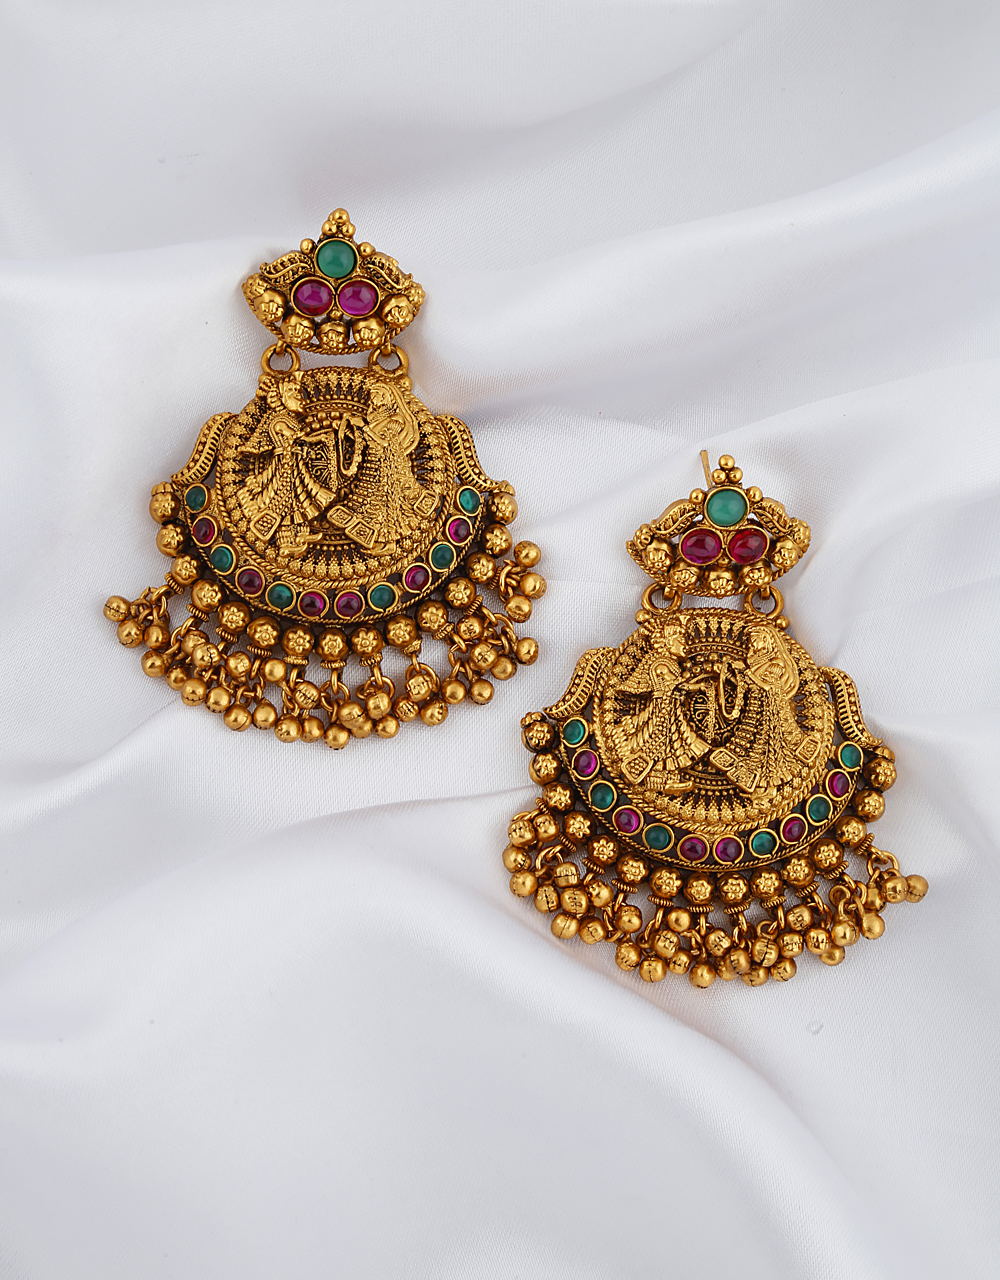 Temple Golden Finish With Anklet Bells Droplet Classy Earrings Pair.